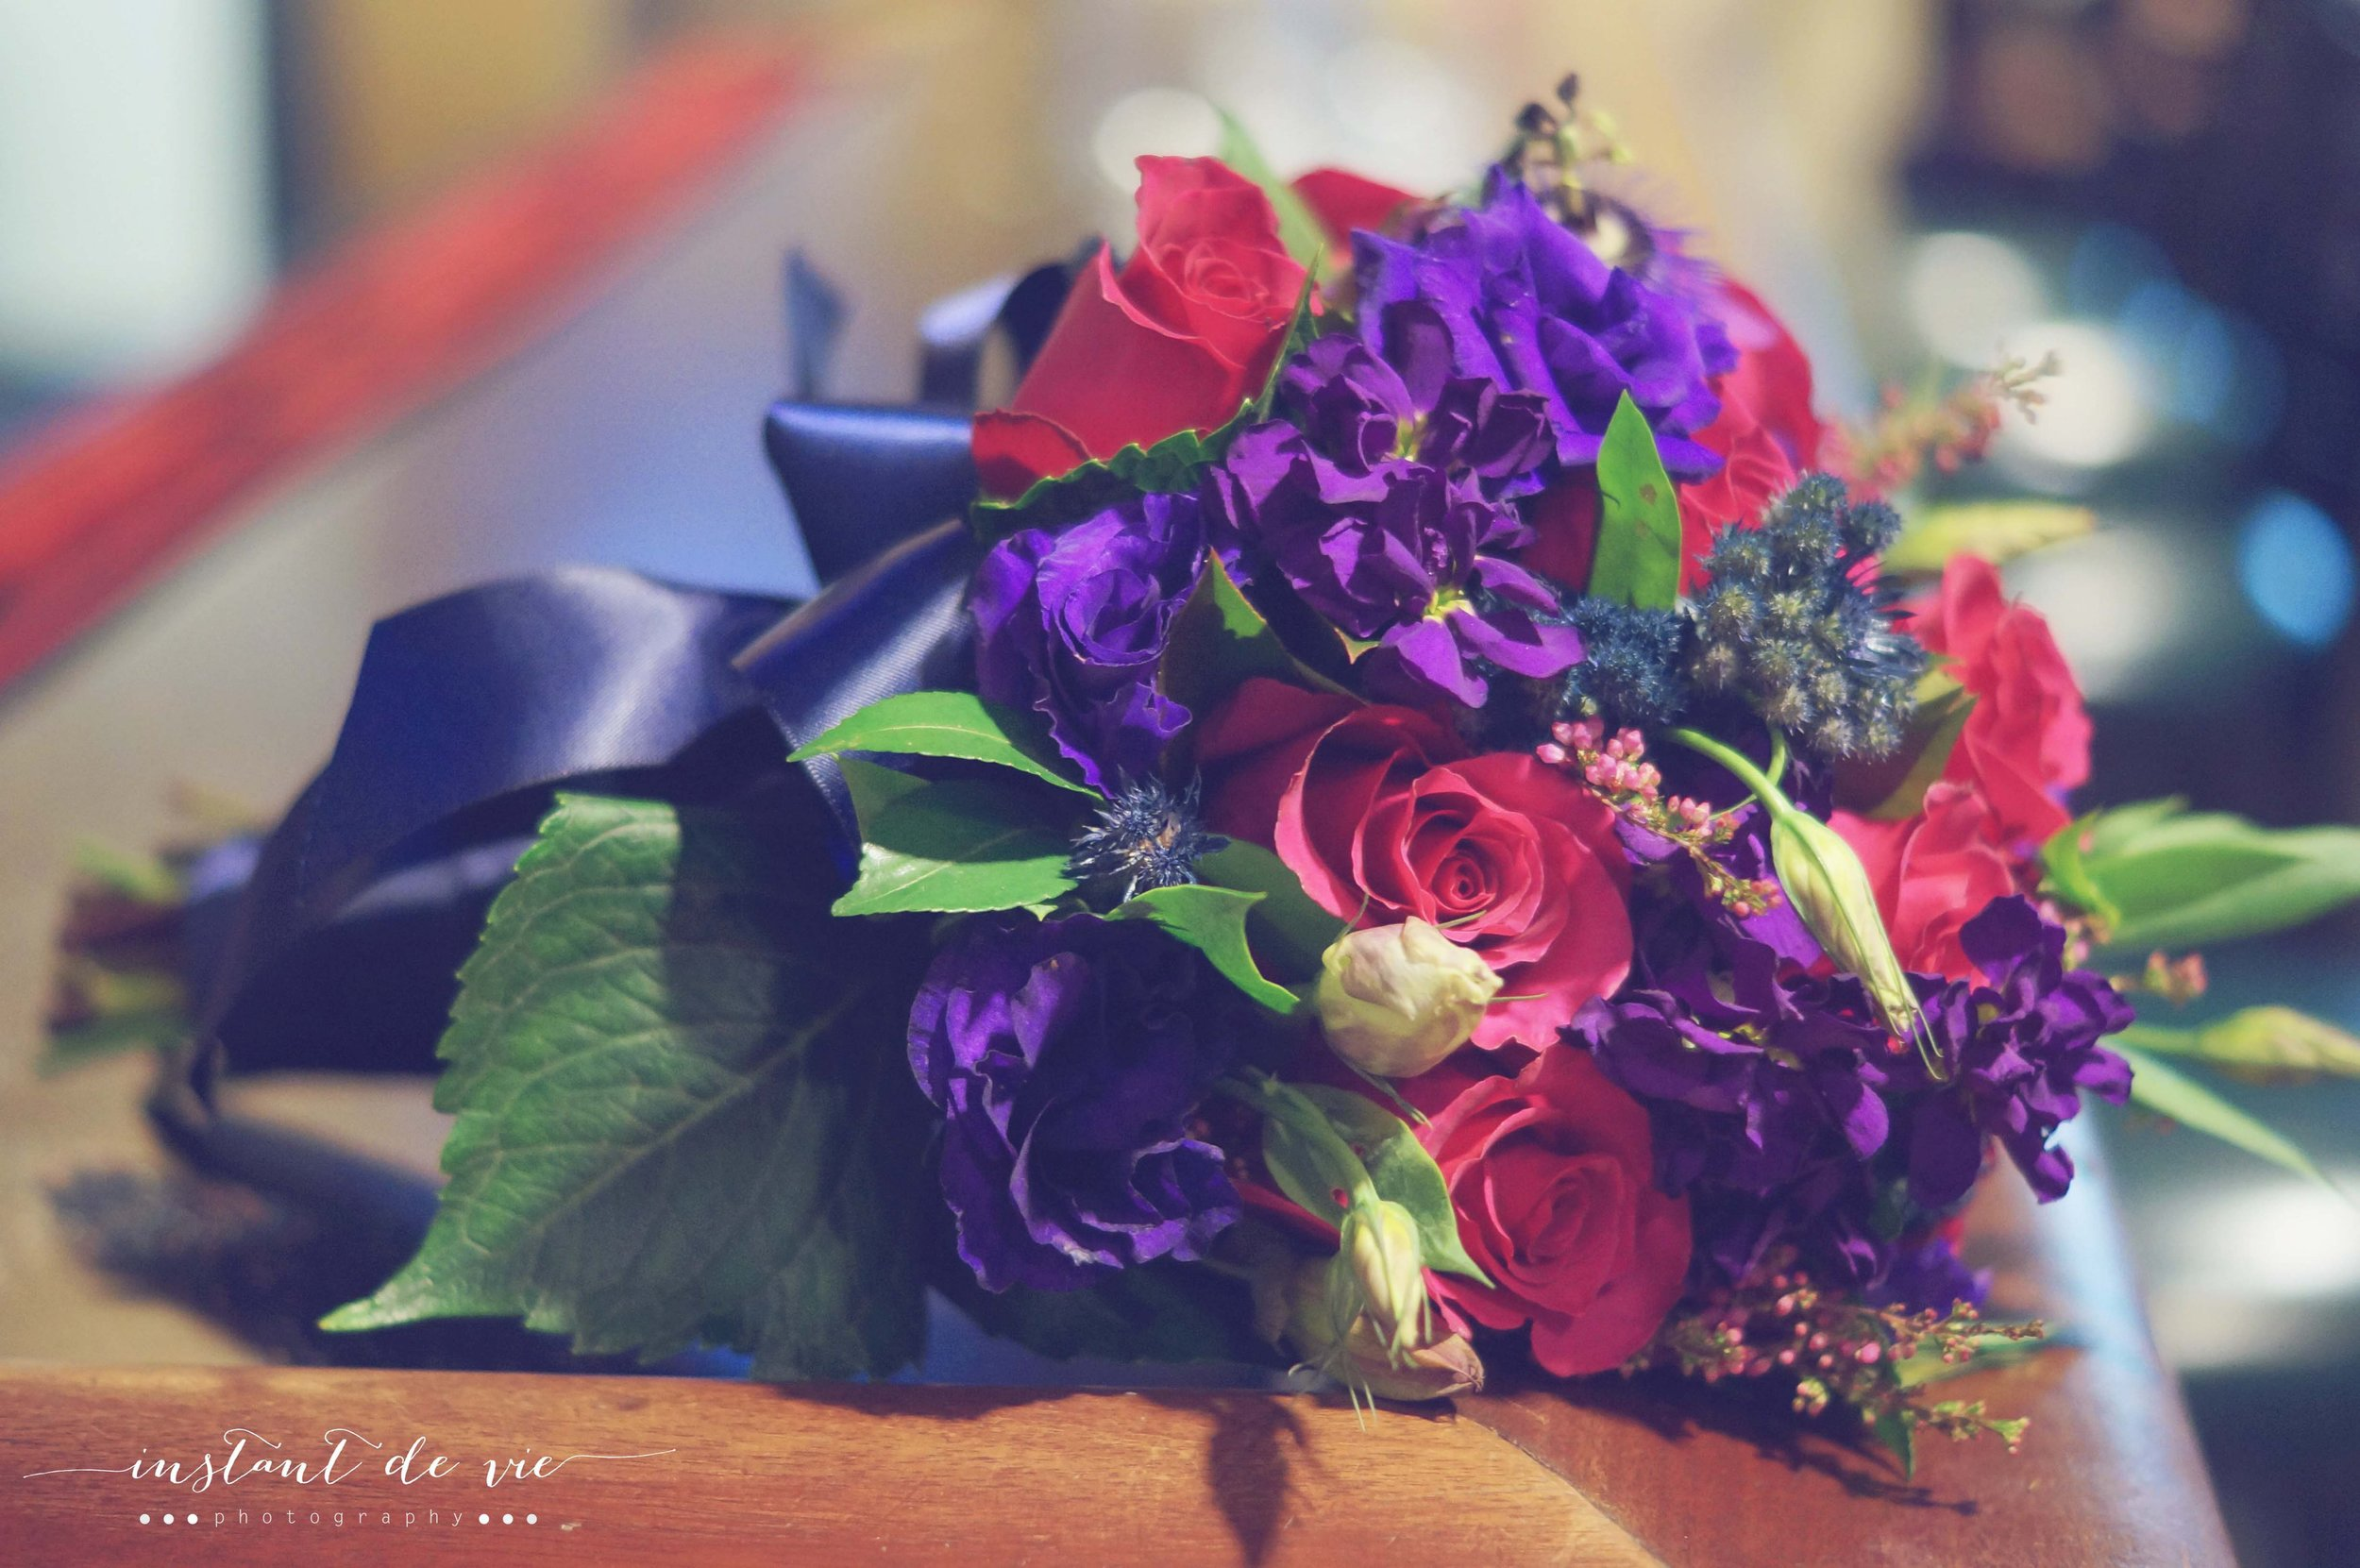 View More: http://instantdeviephotography.pass.us/midnight-wedding--vendors